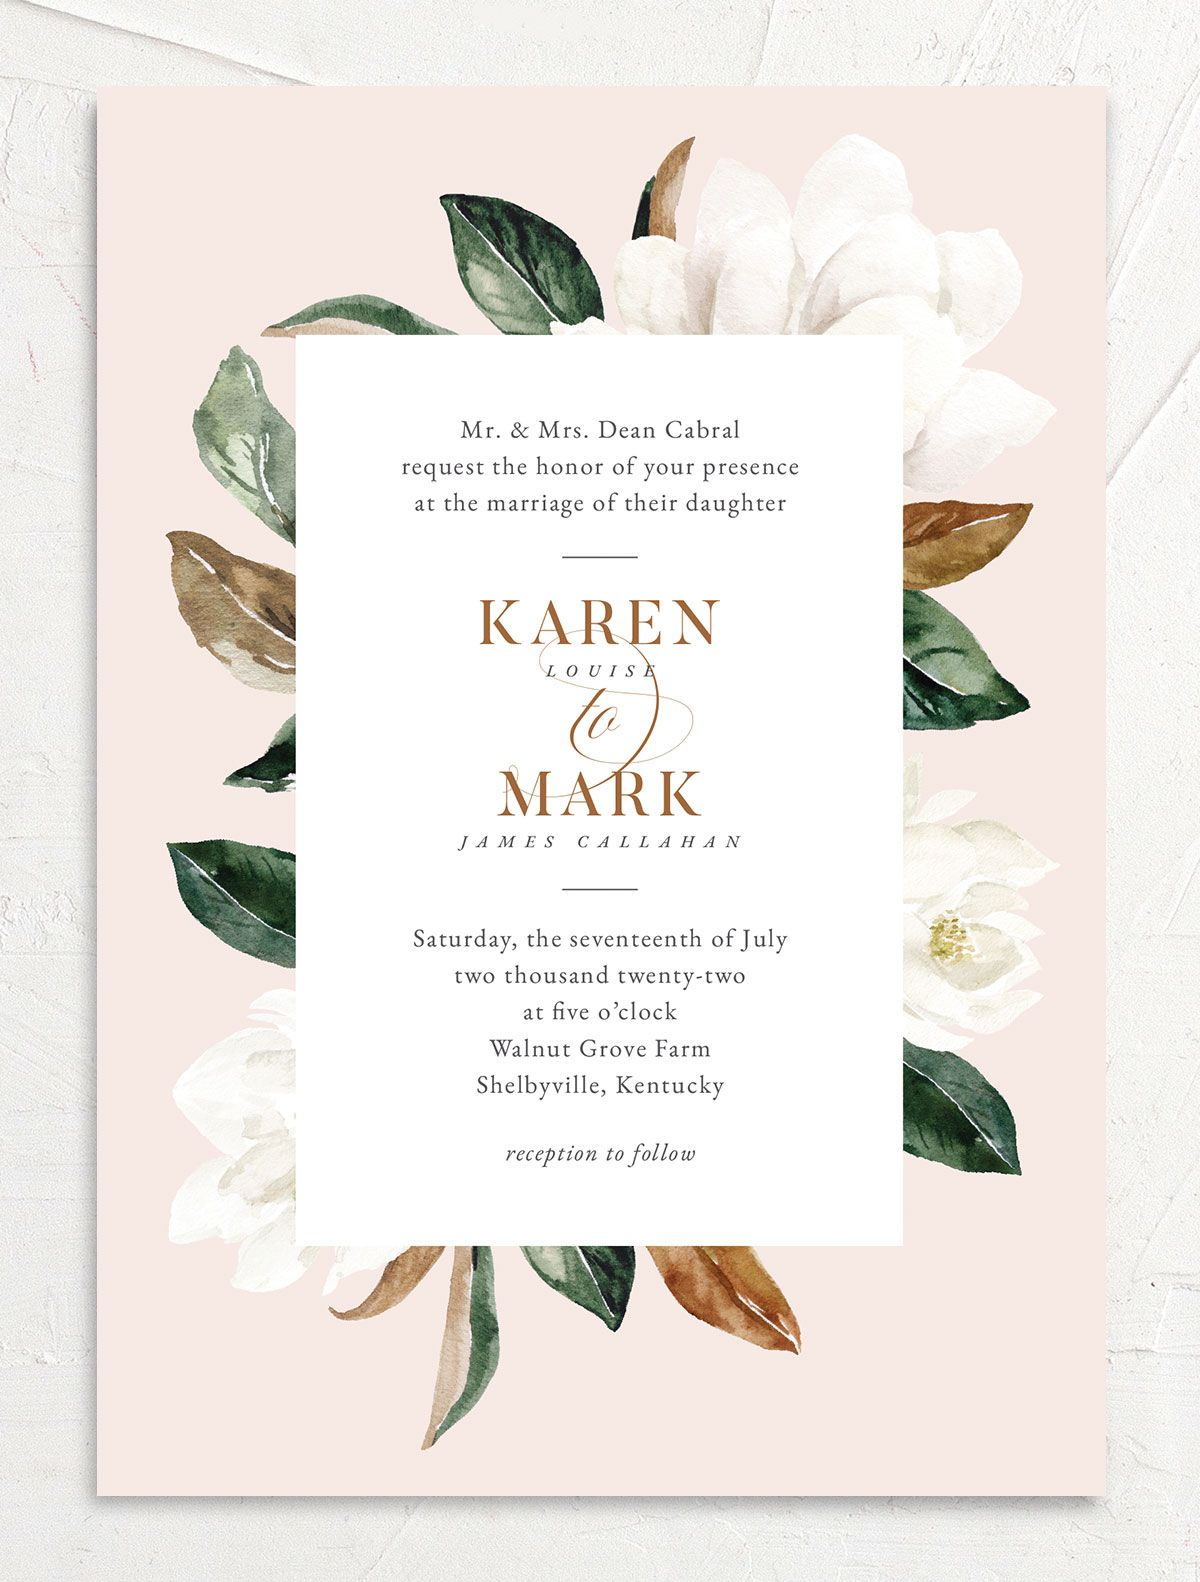 Painted Magnolia Wedding Invitation front in pink